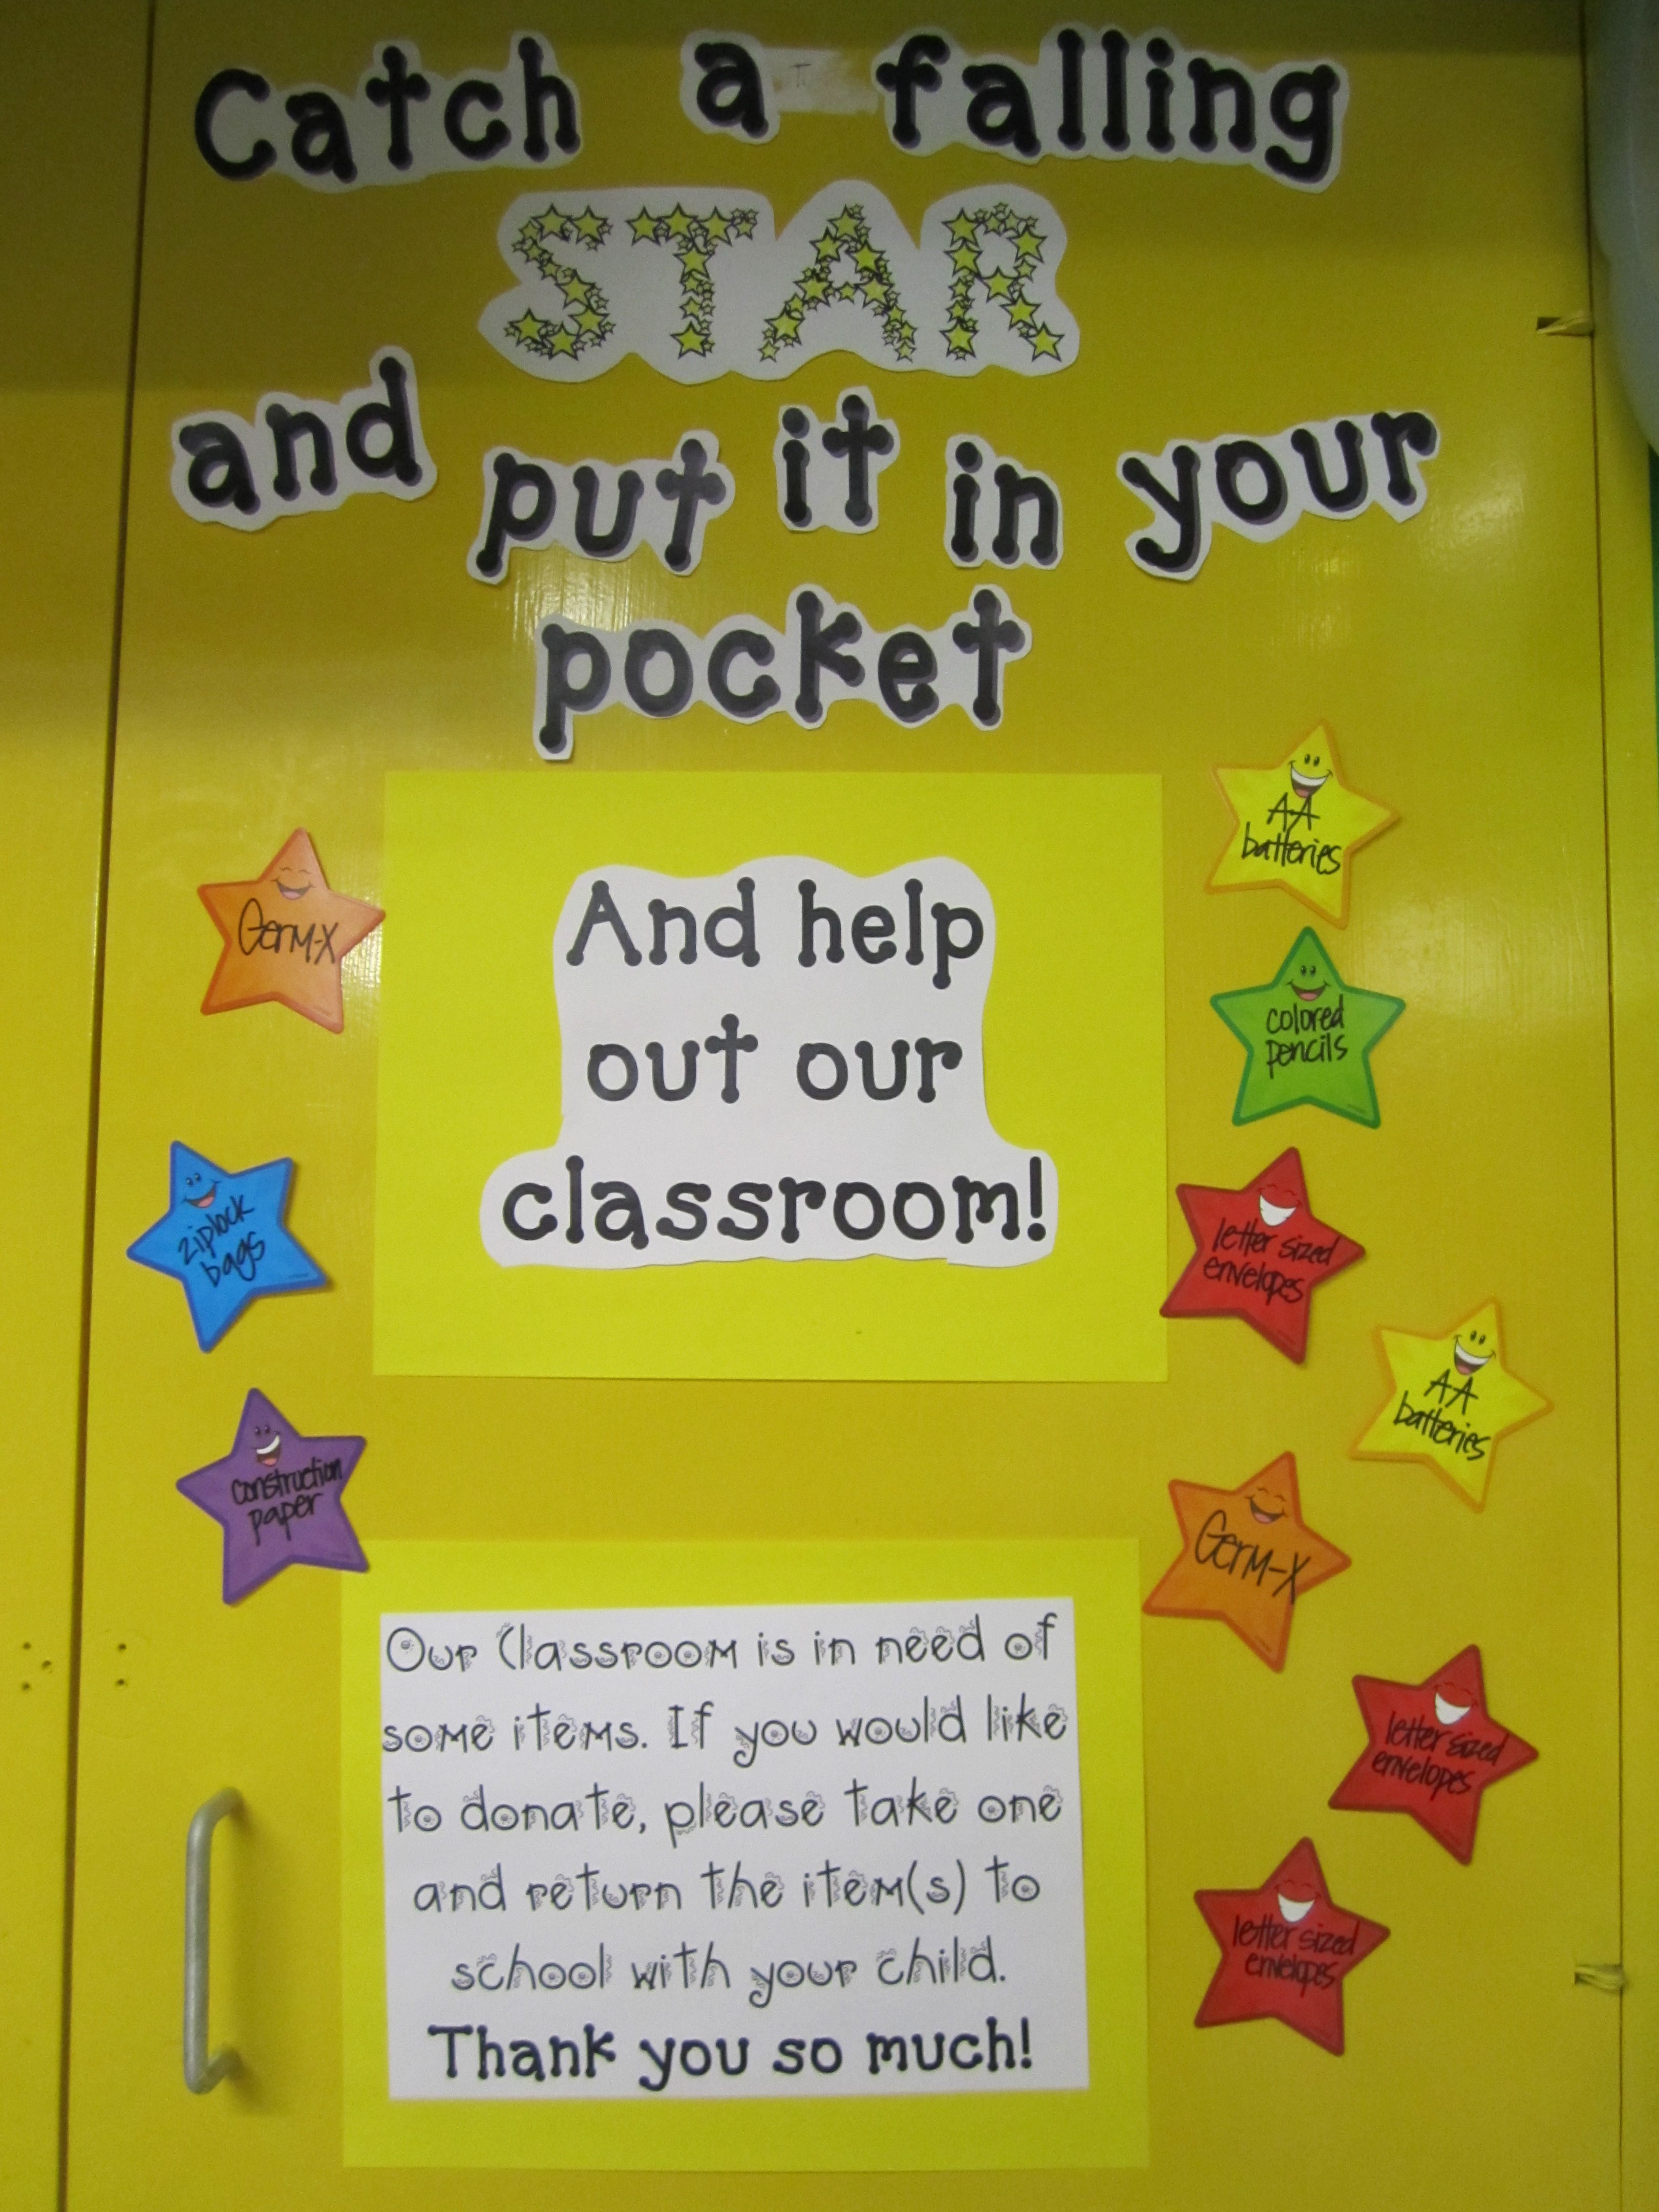 Classroom Theme Ideas List ~ Hollywood space themed classroom wish list posted on a